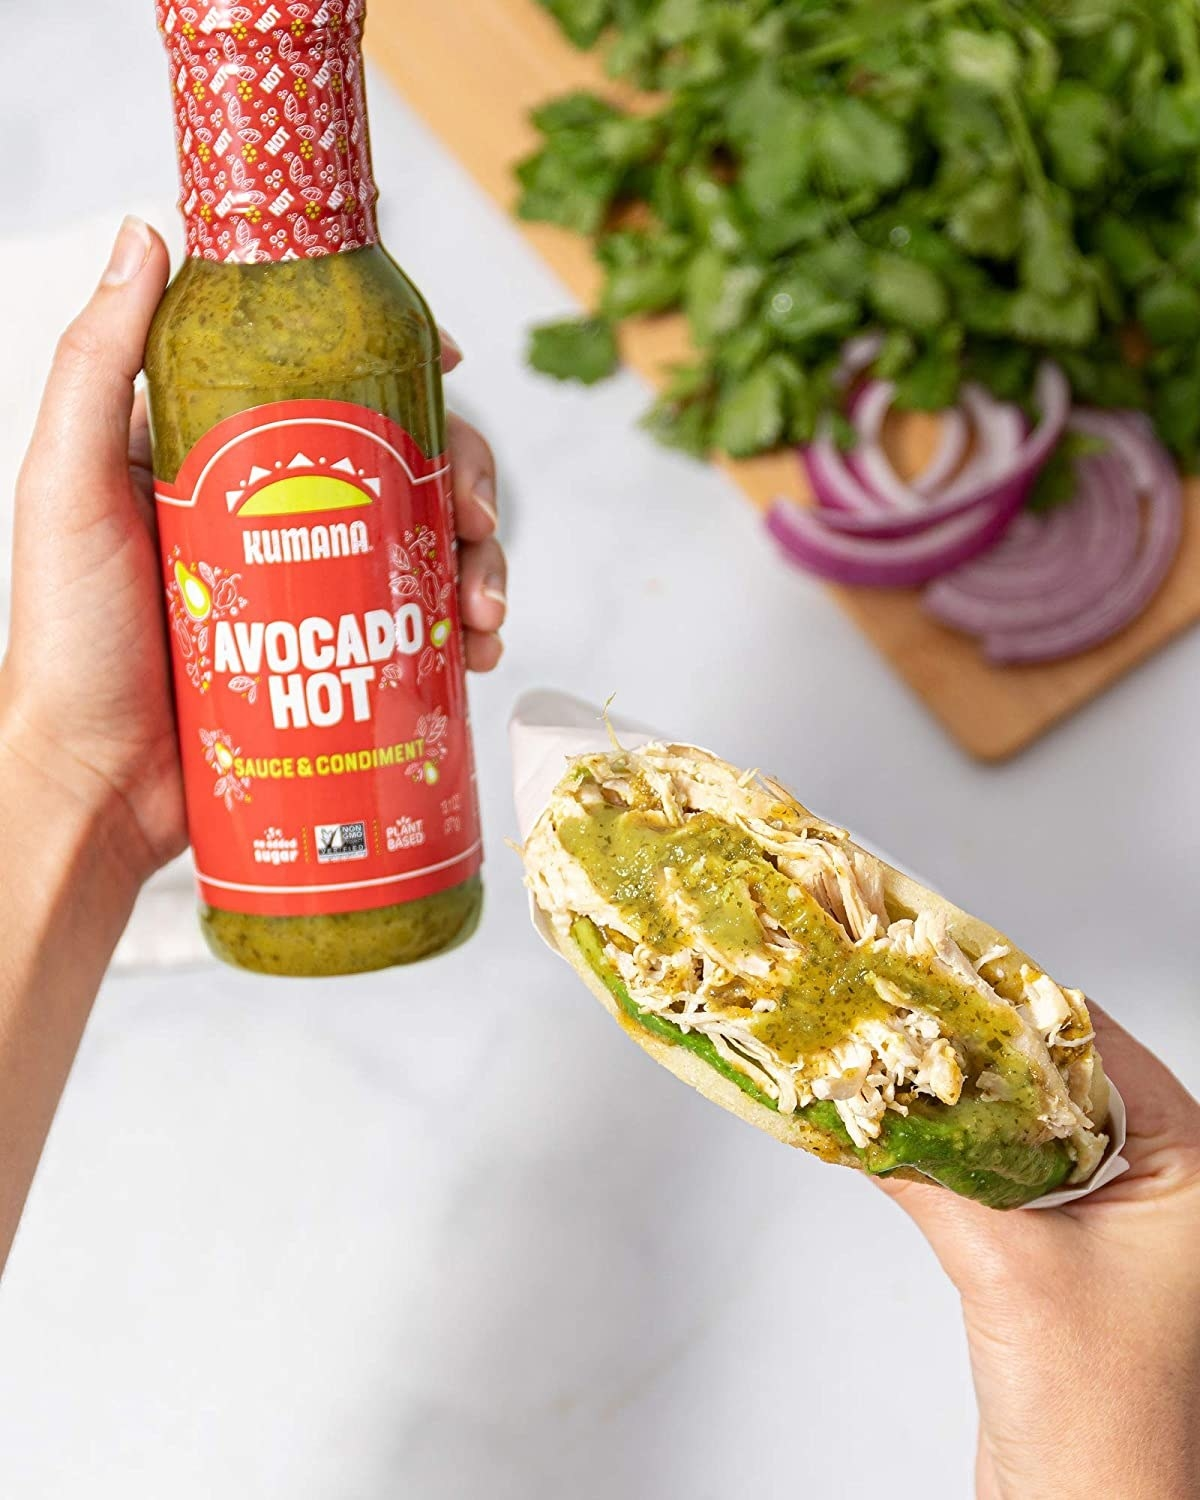 Avocado hot sauce bottle and a pita with sauce in it